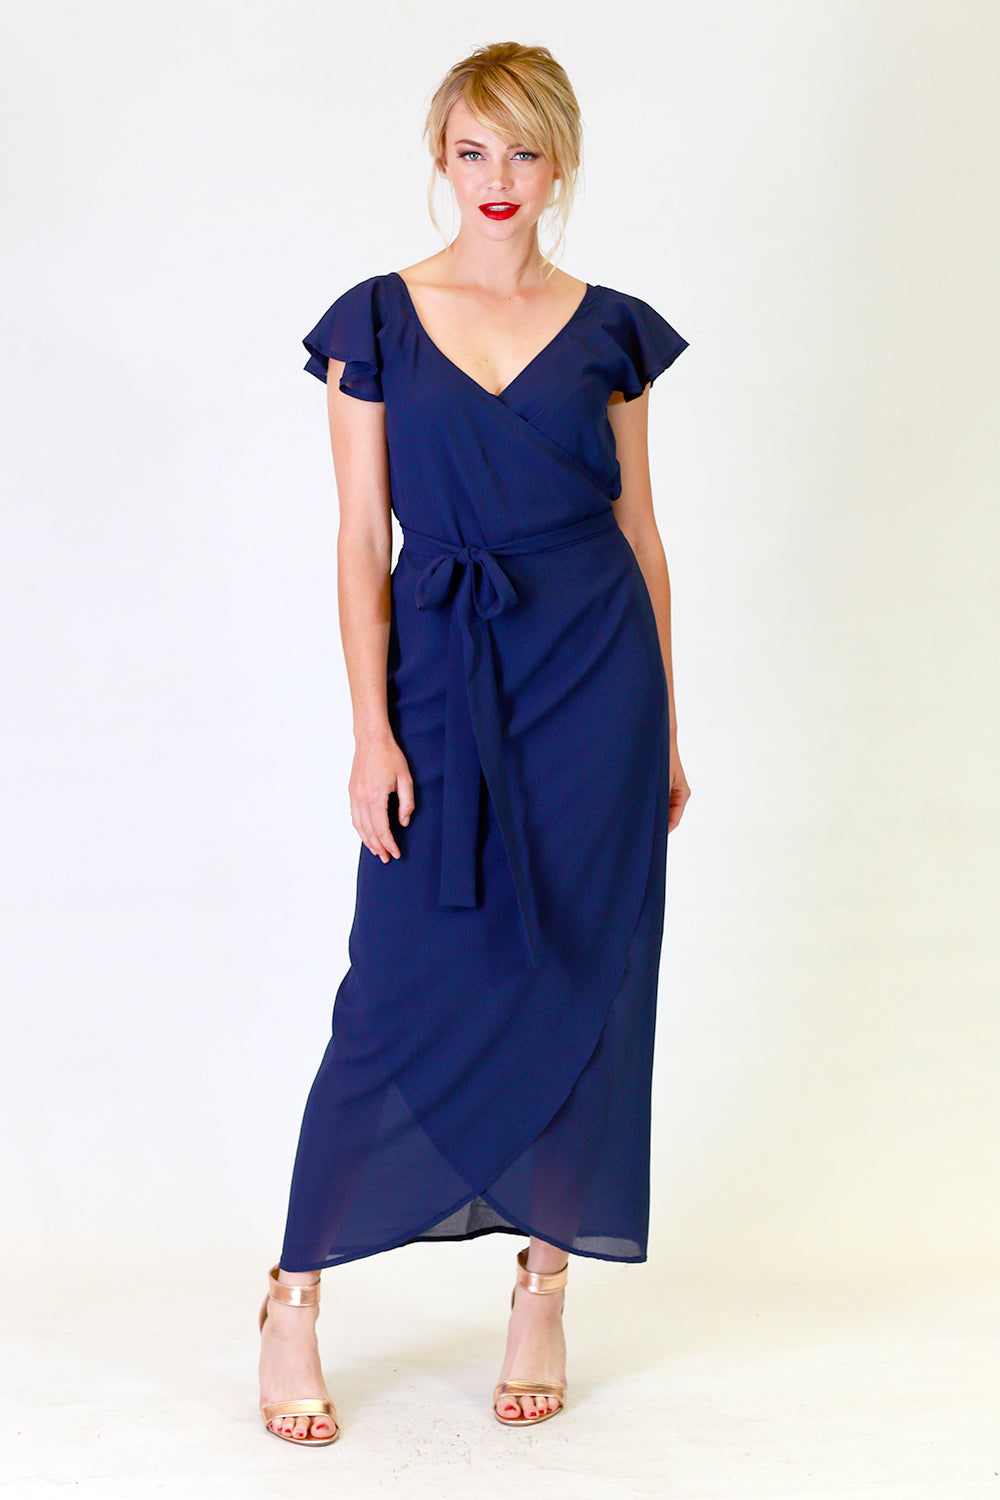 Mandy May Navy Dress